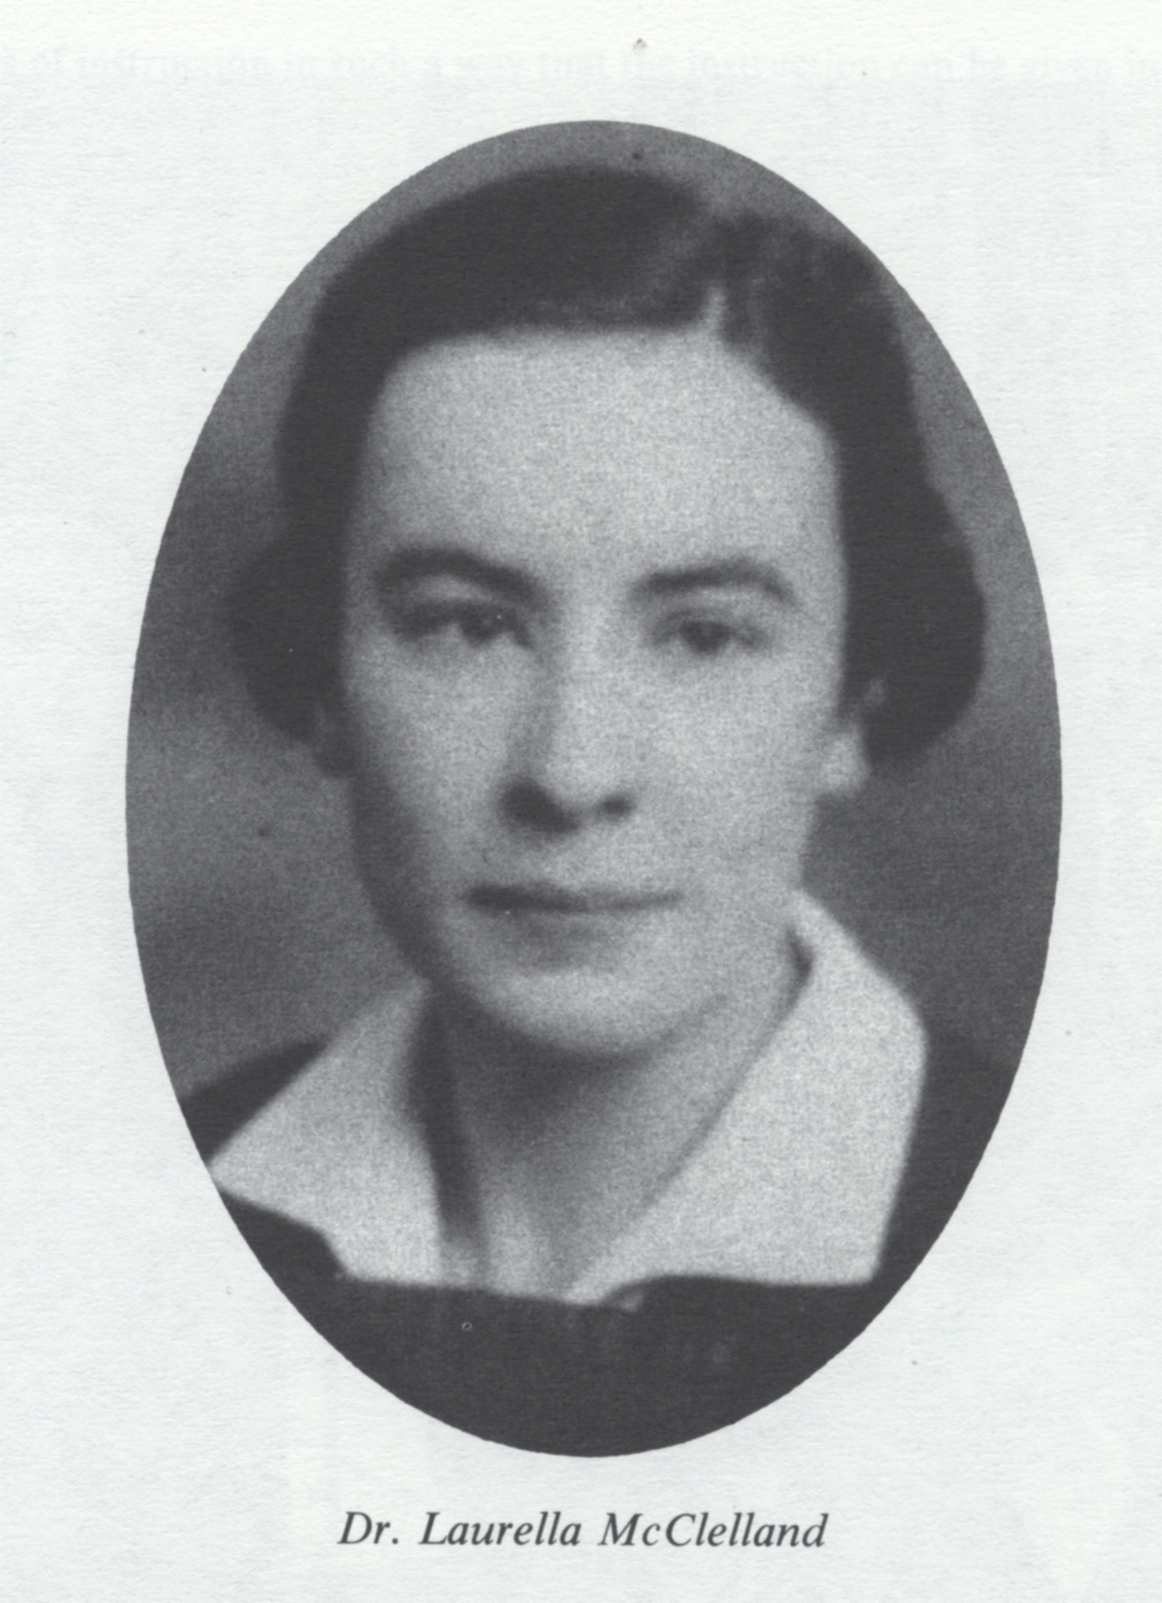 Dr. Laurella McClelland was a graduate of the U of T Faculty of Medicine in 1938 and joined Connaught in 1941 as a senior researcher based at the Labs' Farm site, playing a major role in typhus and influenza vaccine production.